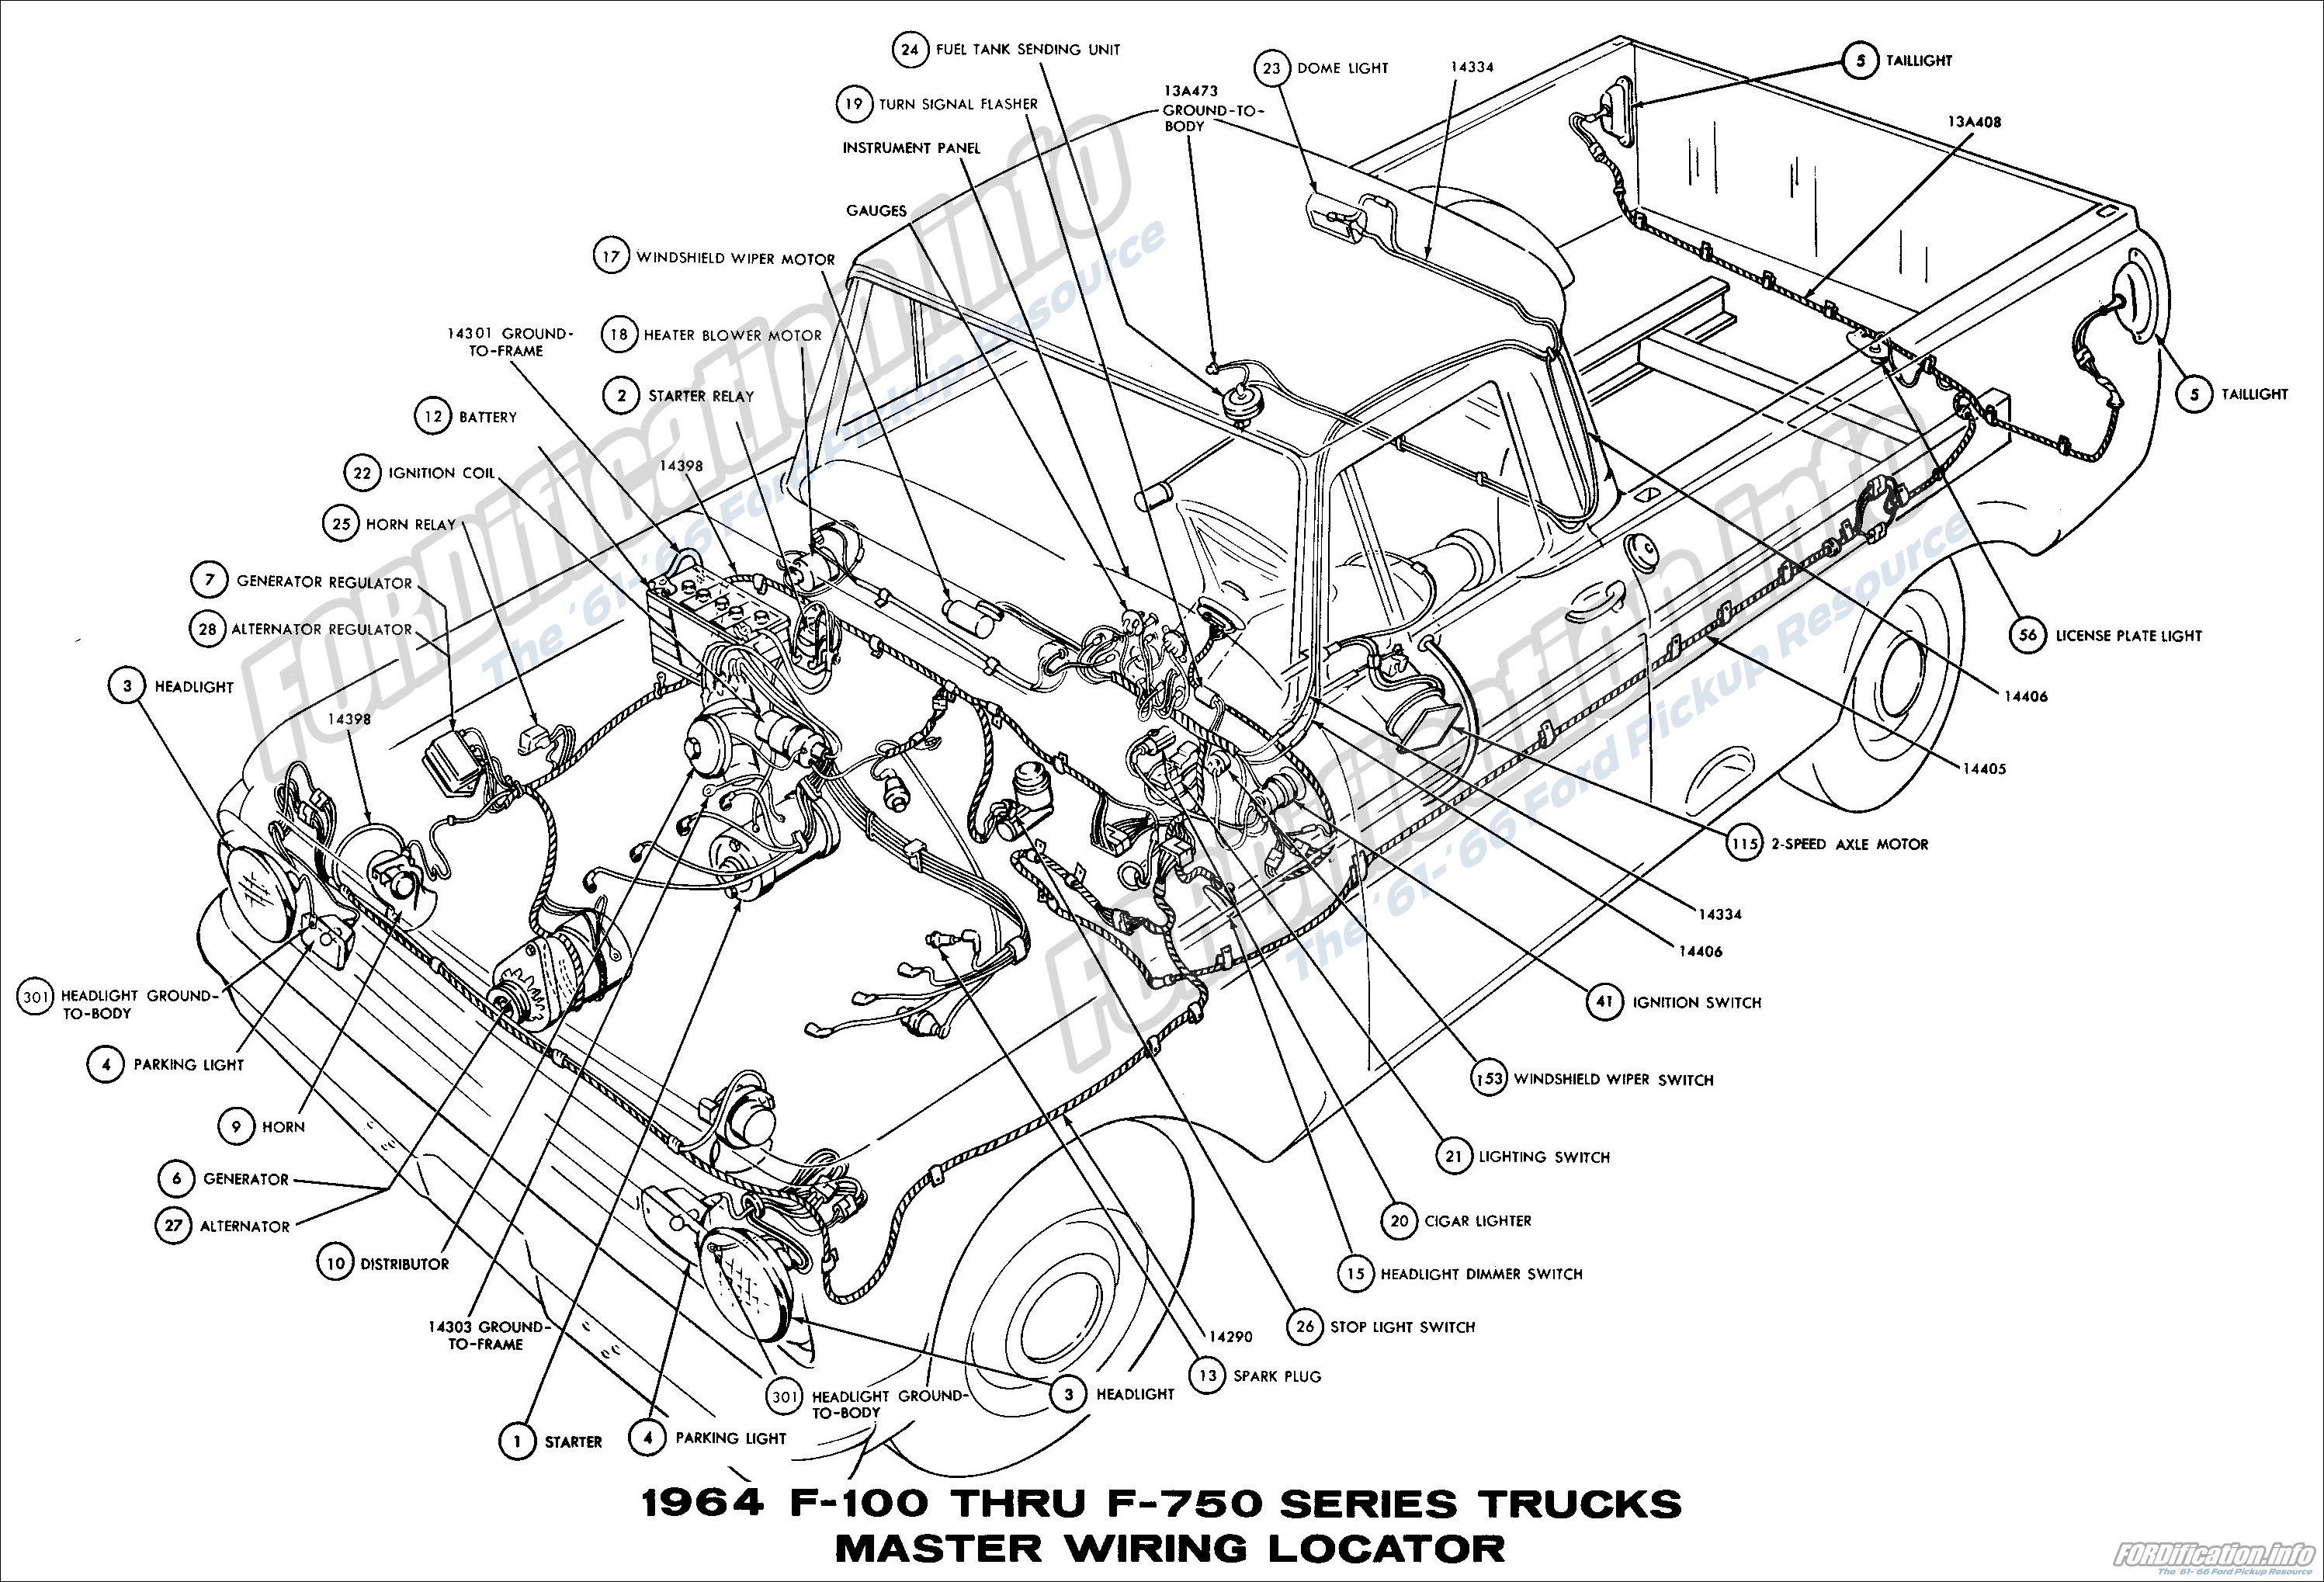 1964 Ford Truck Wiring Diagrams Fordification Info The '61 '66 1966 Ford  F100 Wiring Schematic 1966 Ford Pick Up Heater Wiring Diagram